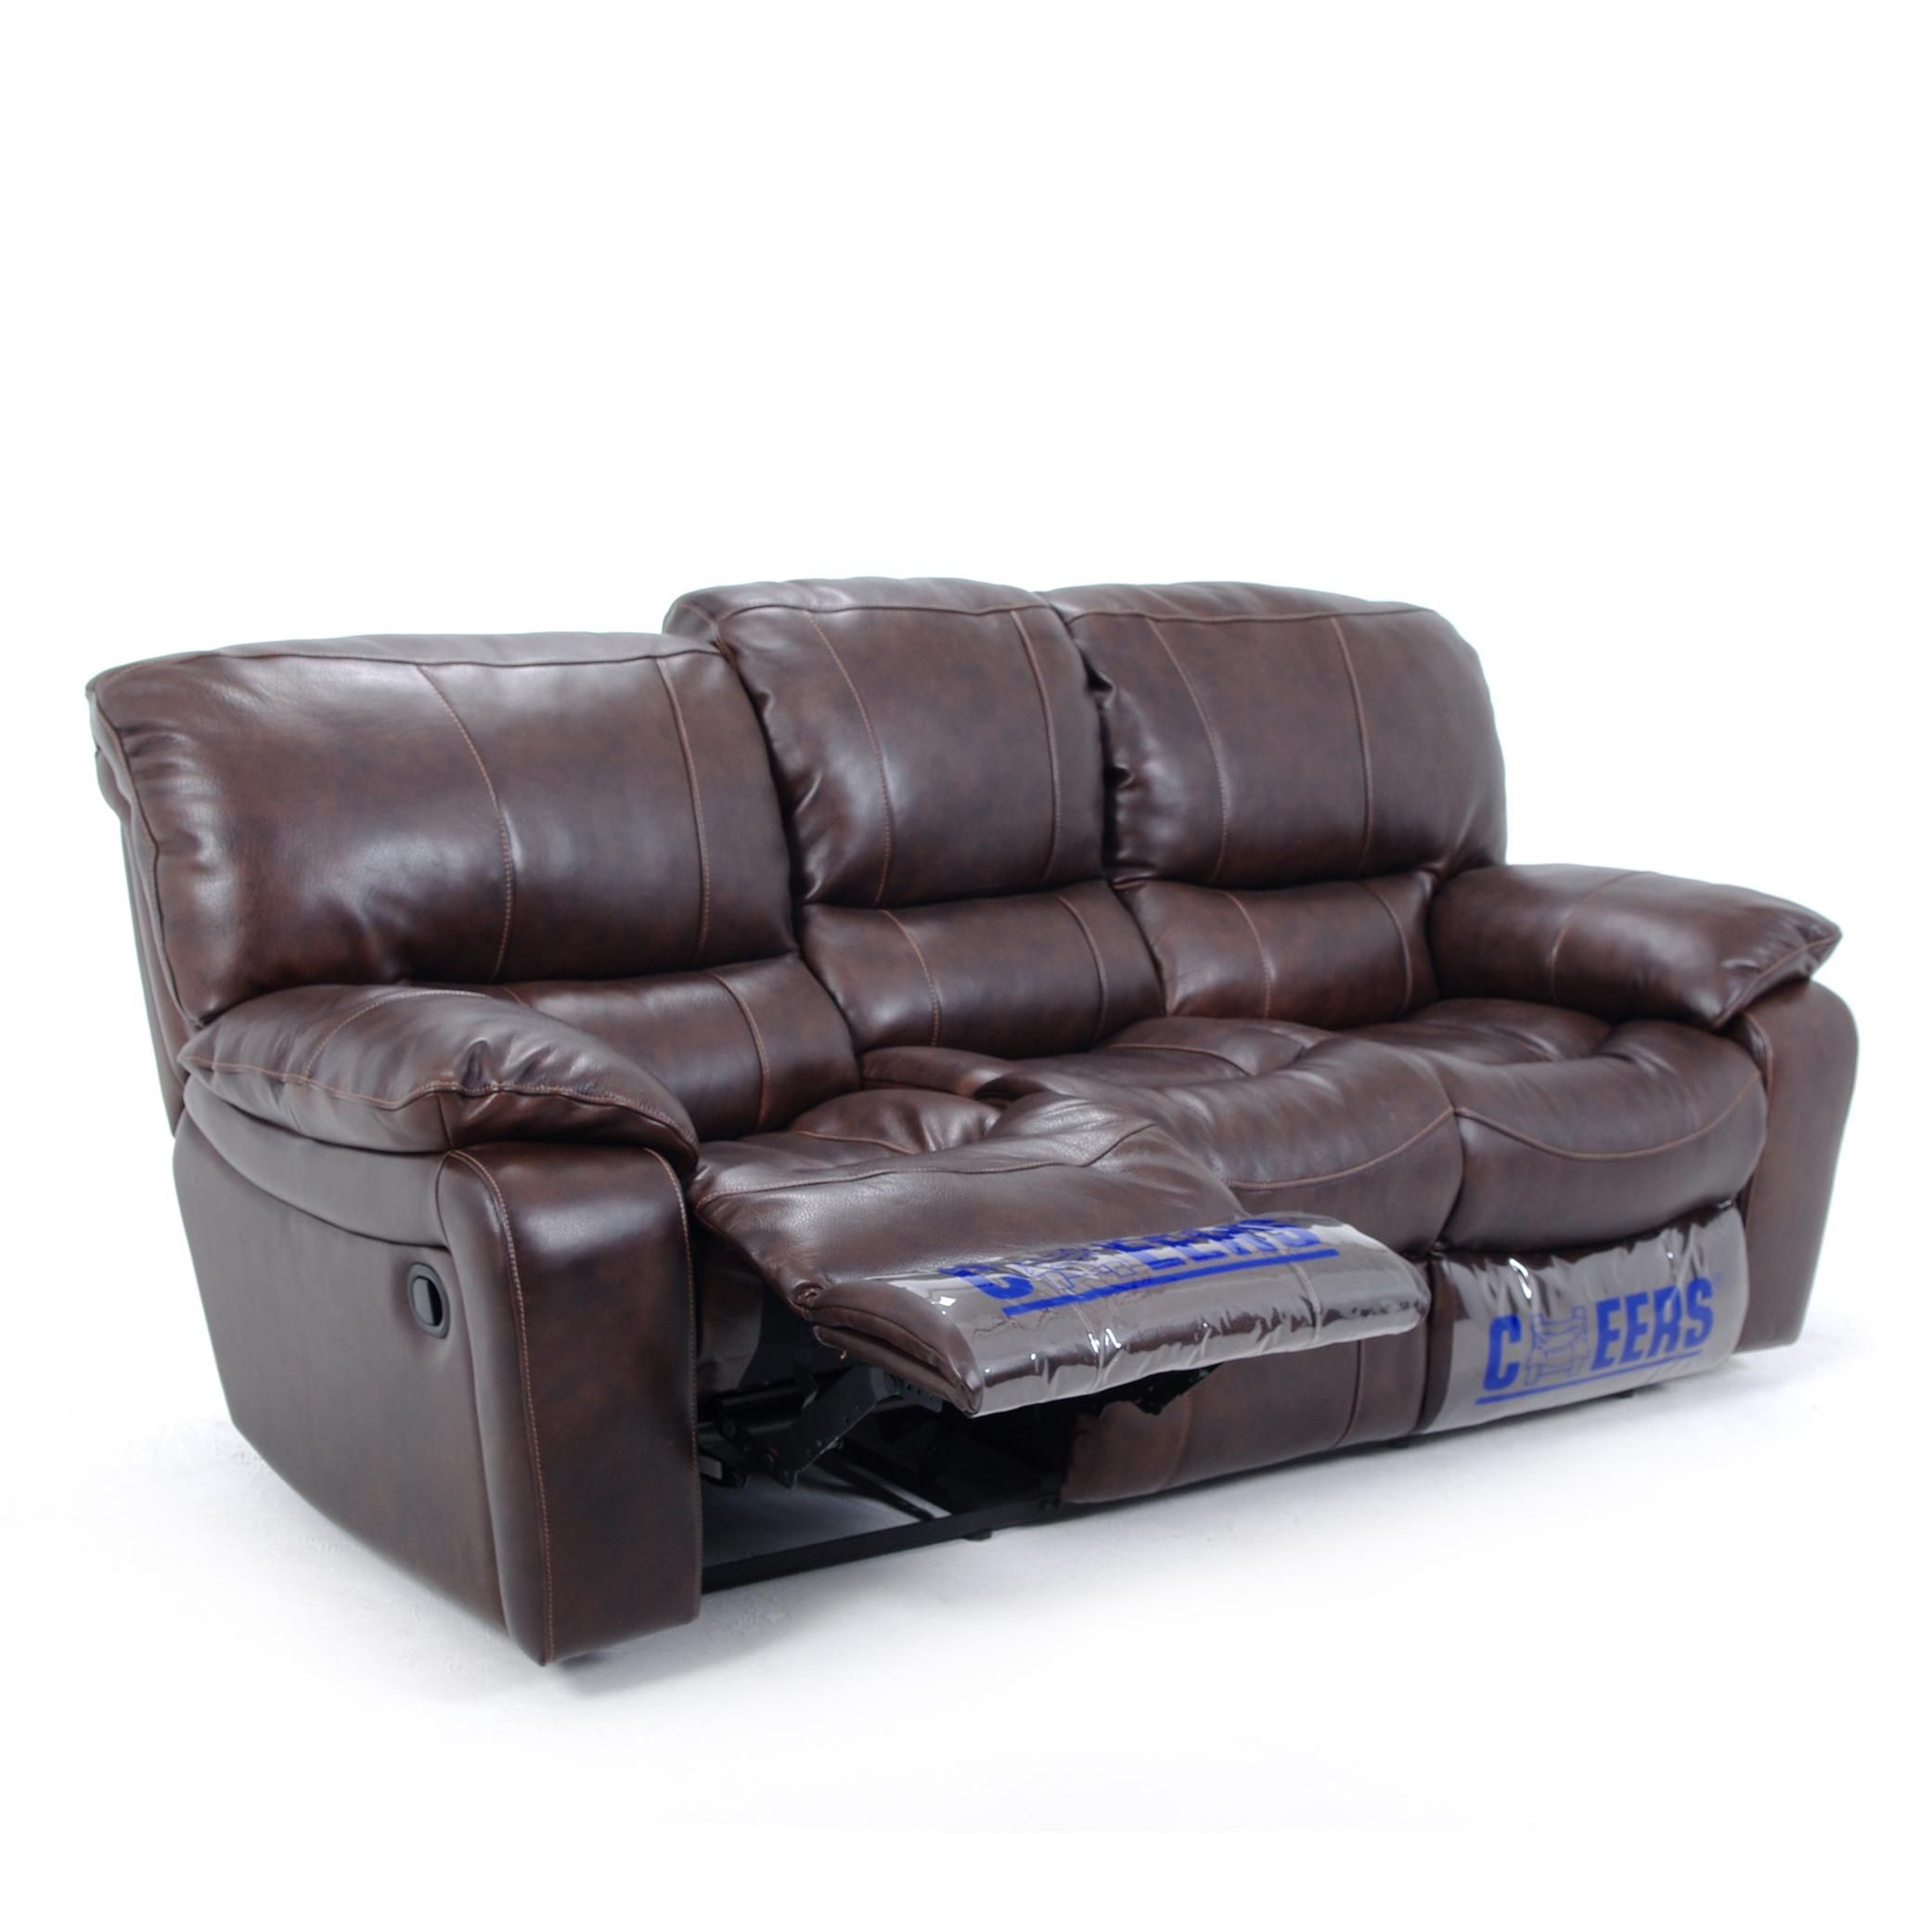 Pleasing Ux8625M Reclining Leather Sofa By Cheers Sofa Kims Dailytribune Chair Design For Home Dailytribuneorg